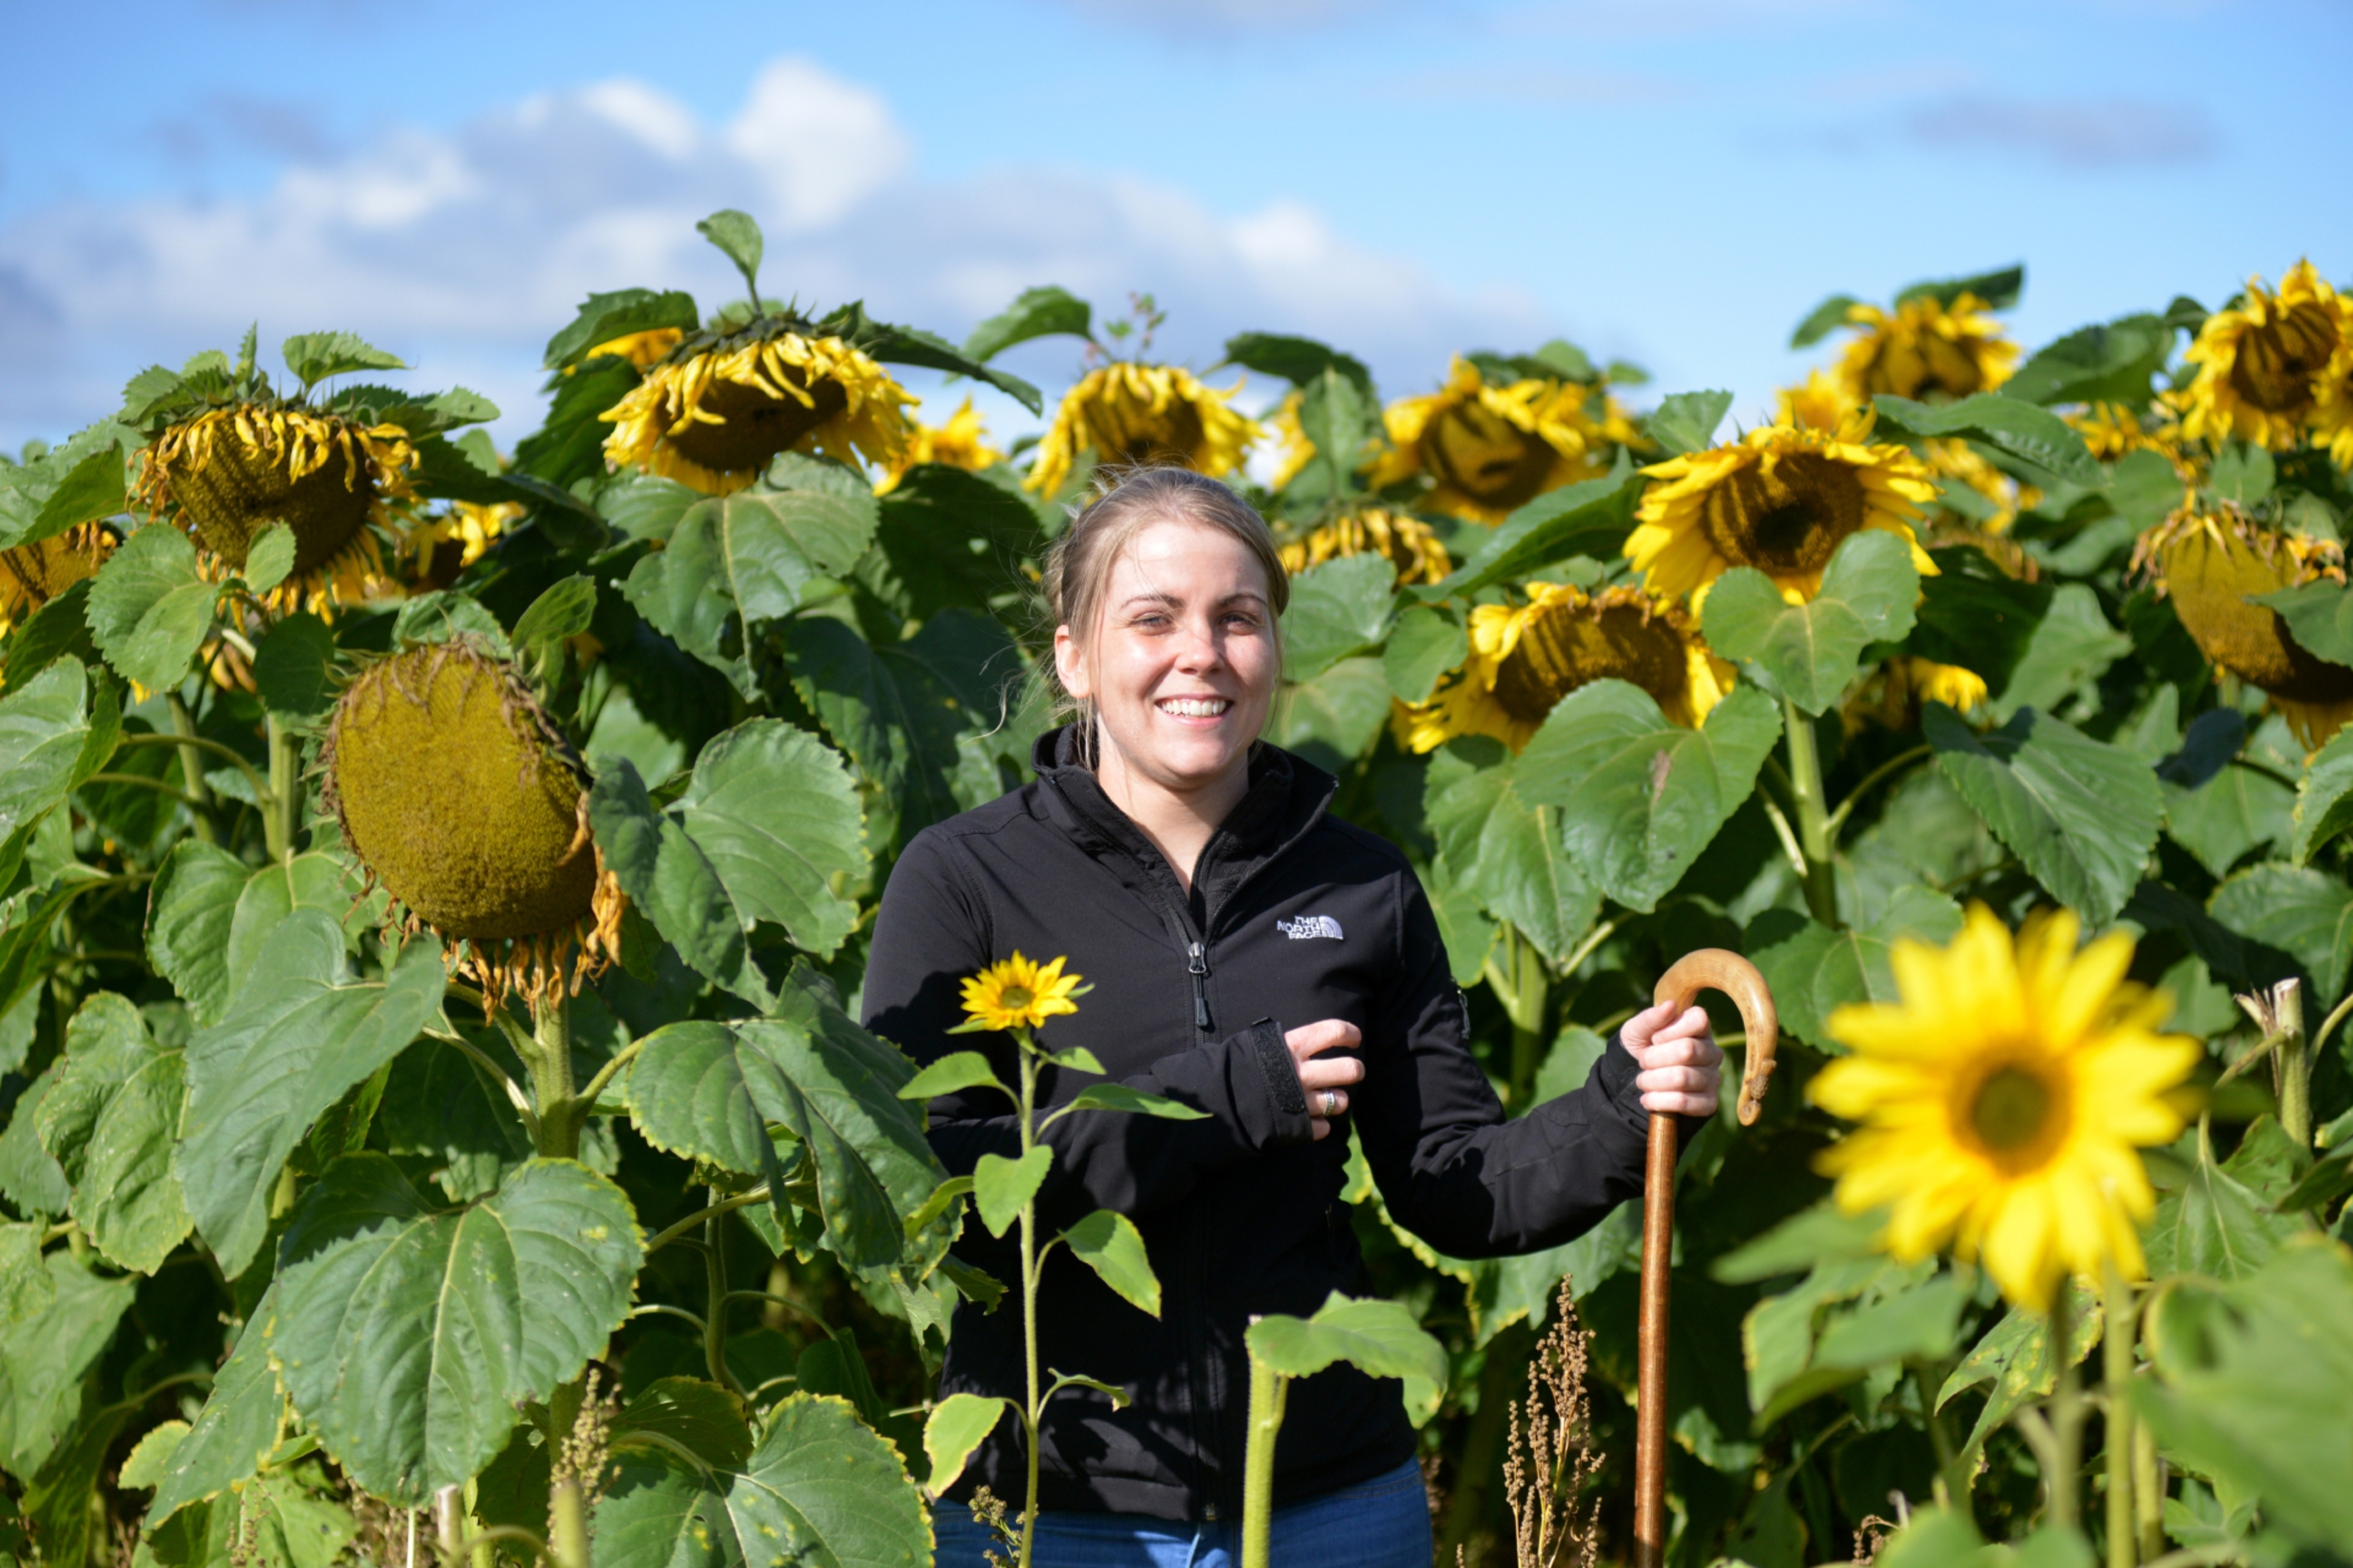 Claire Pollocks looks after four farms in Fife and runs Ardross Farm Shop.